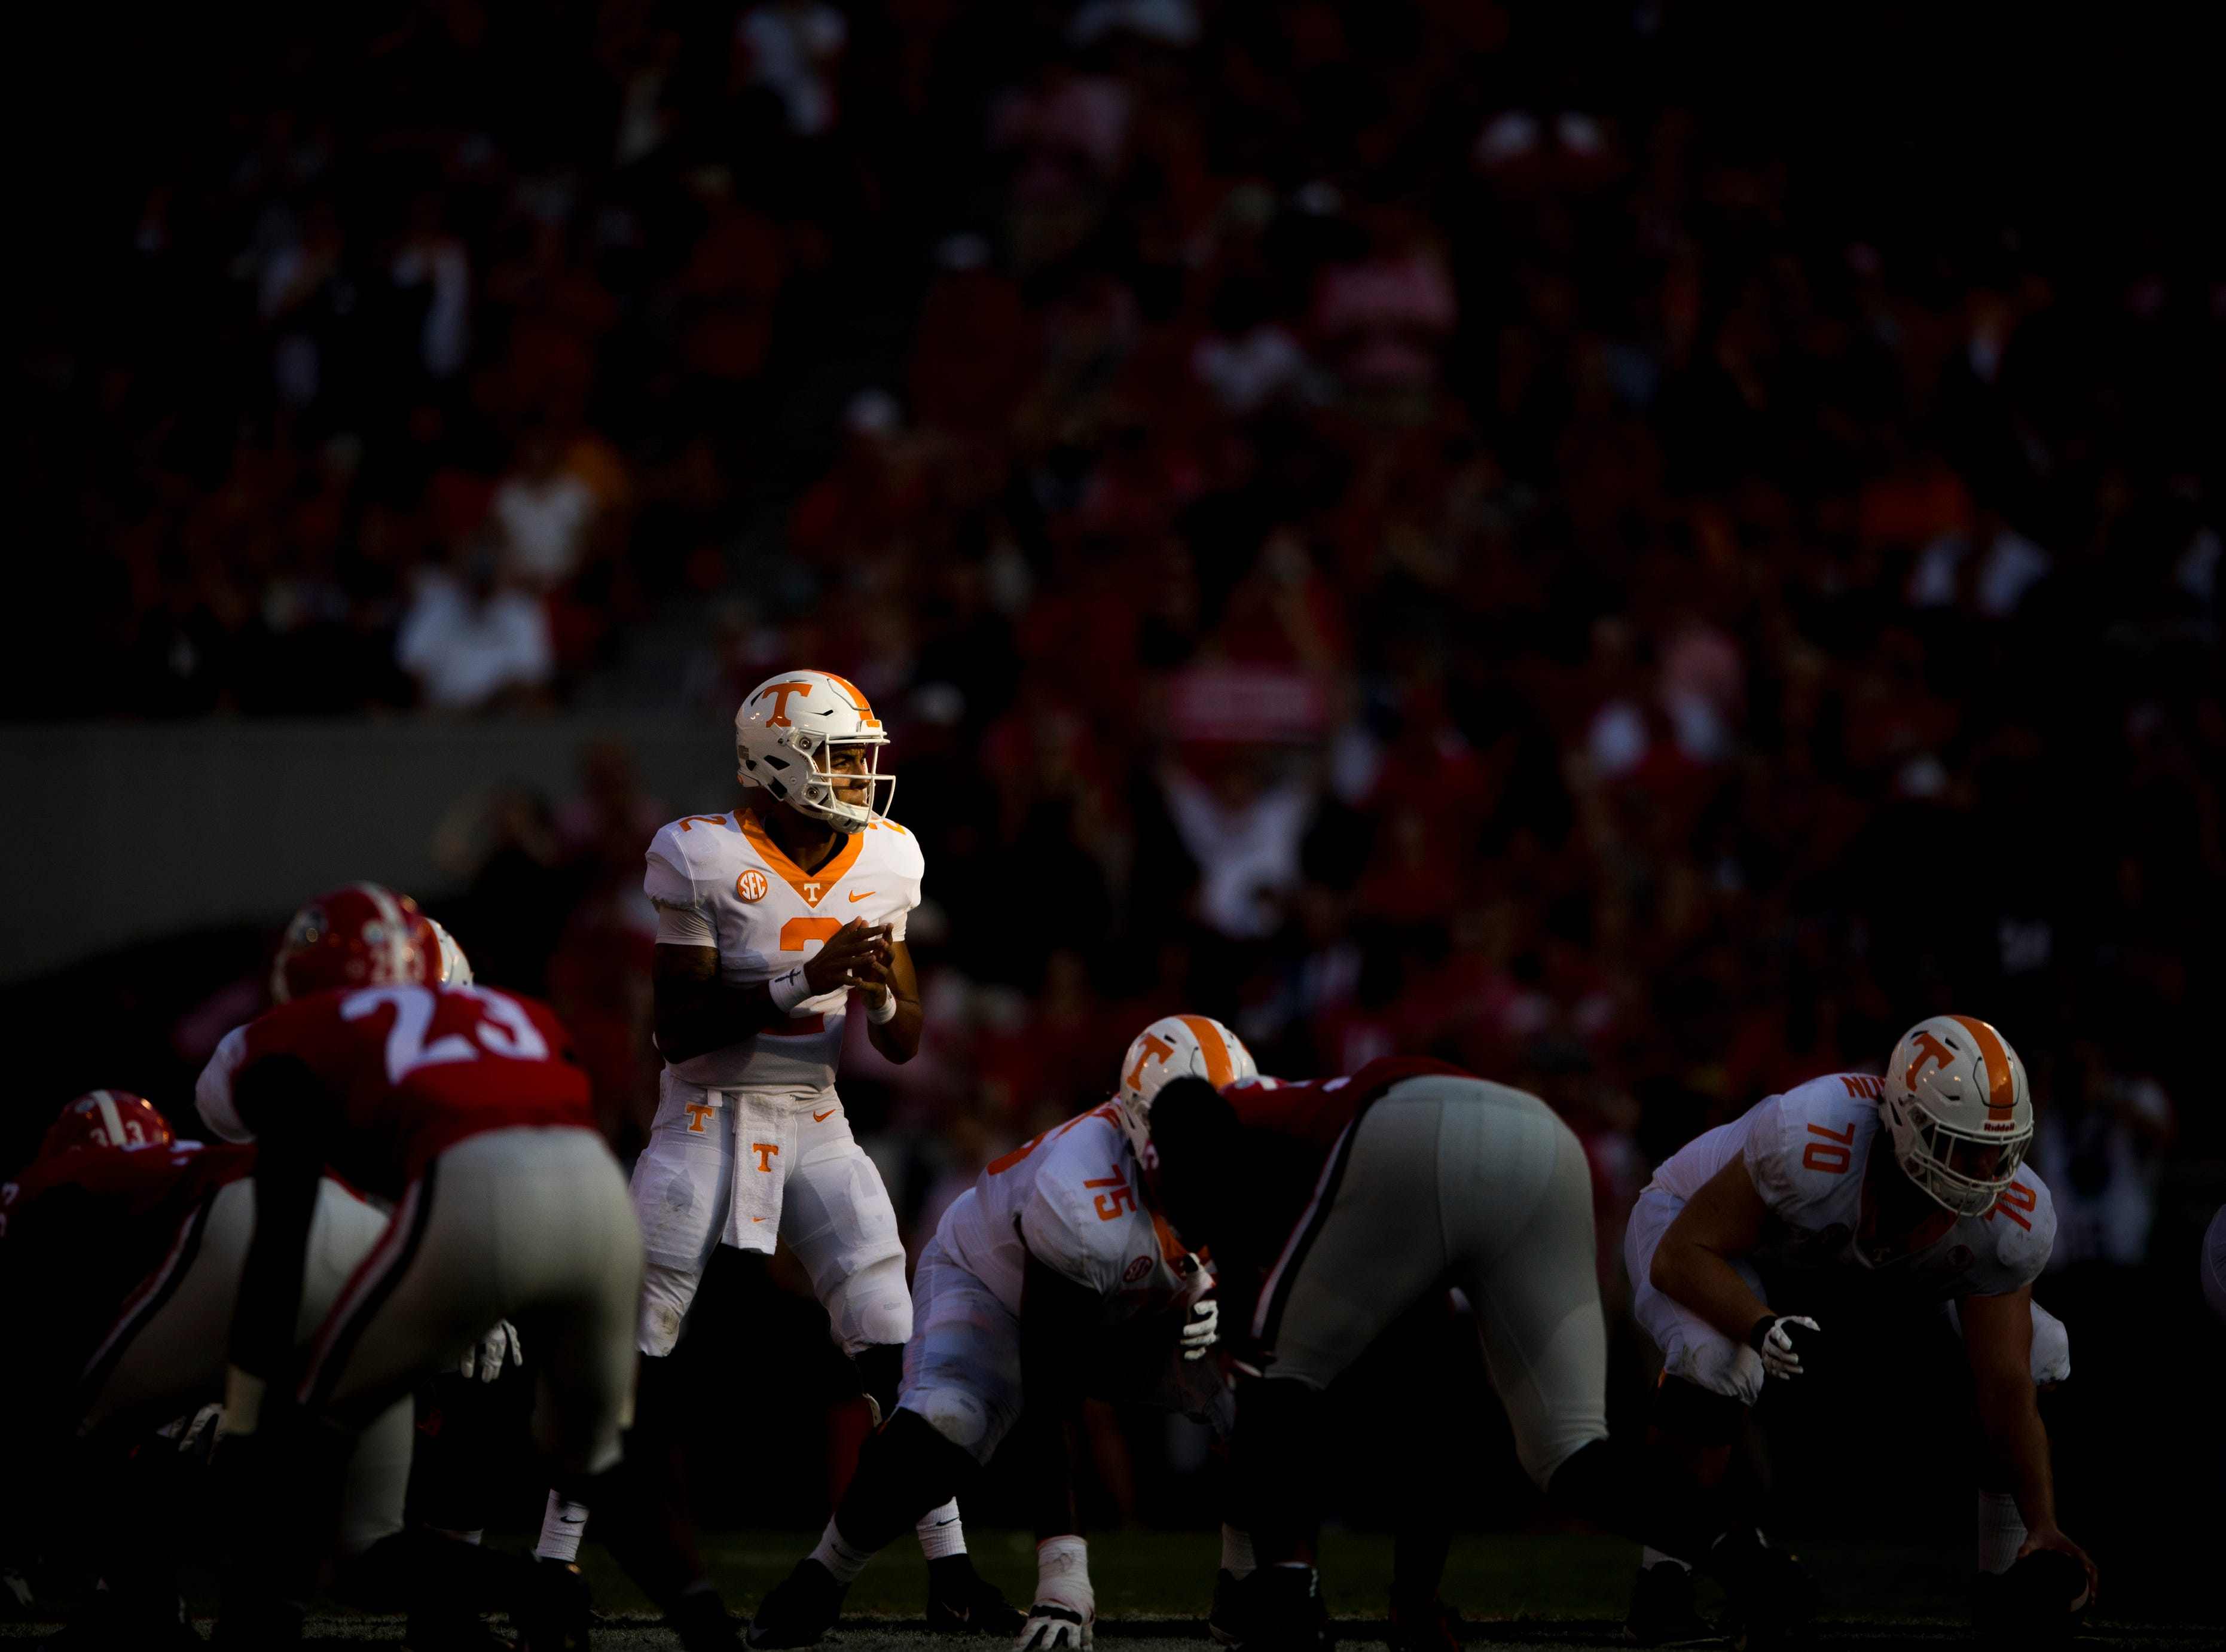 The setting sun illuminates Tennessee quarterback Jarrett Guarantano (2) as he calls for the snap during the Tennessee Volunteers' game against Georgia in Sanford Stadium in Athens, Ga., on Saturday, Sept. 29, 2018.